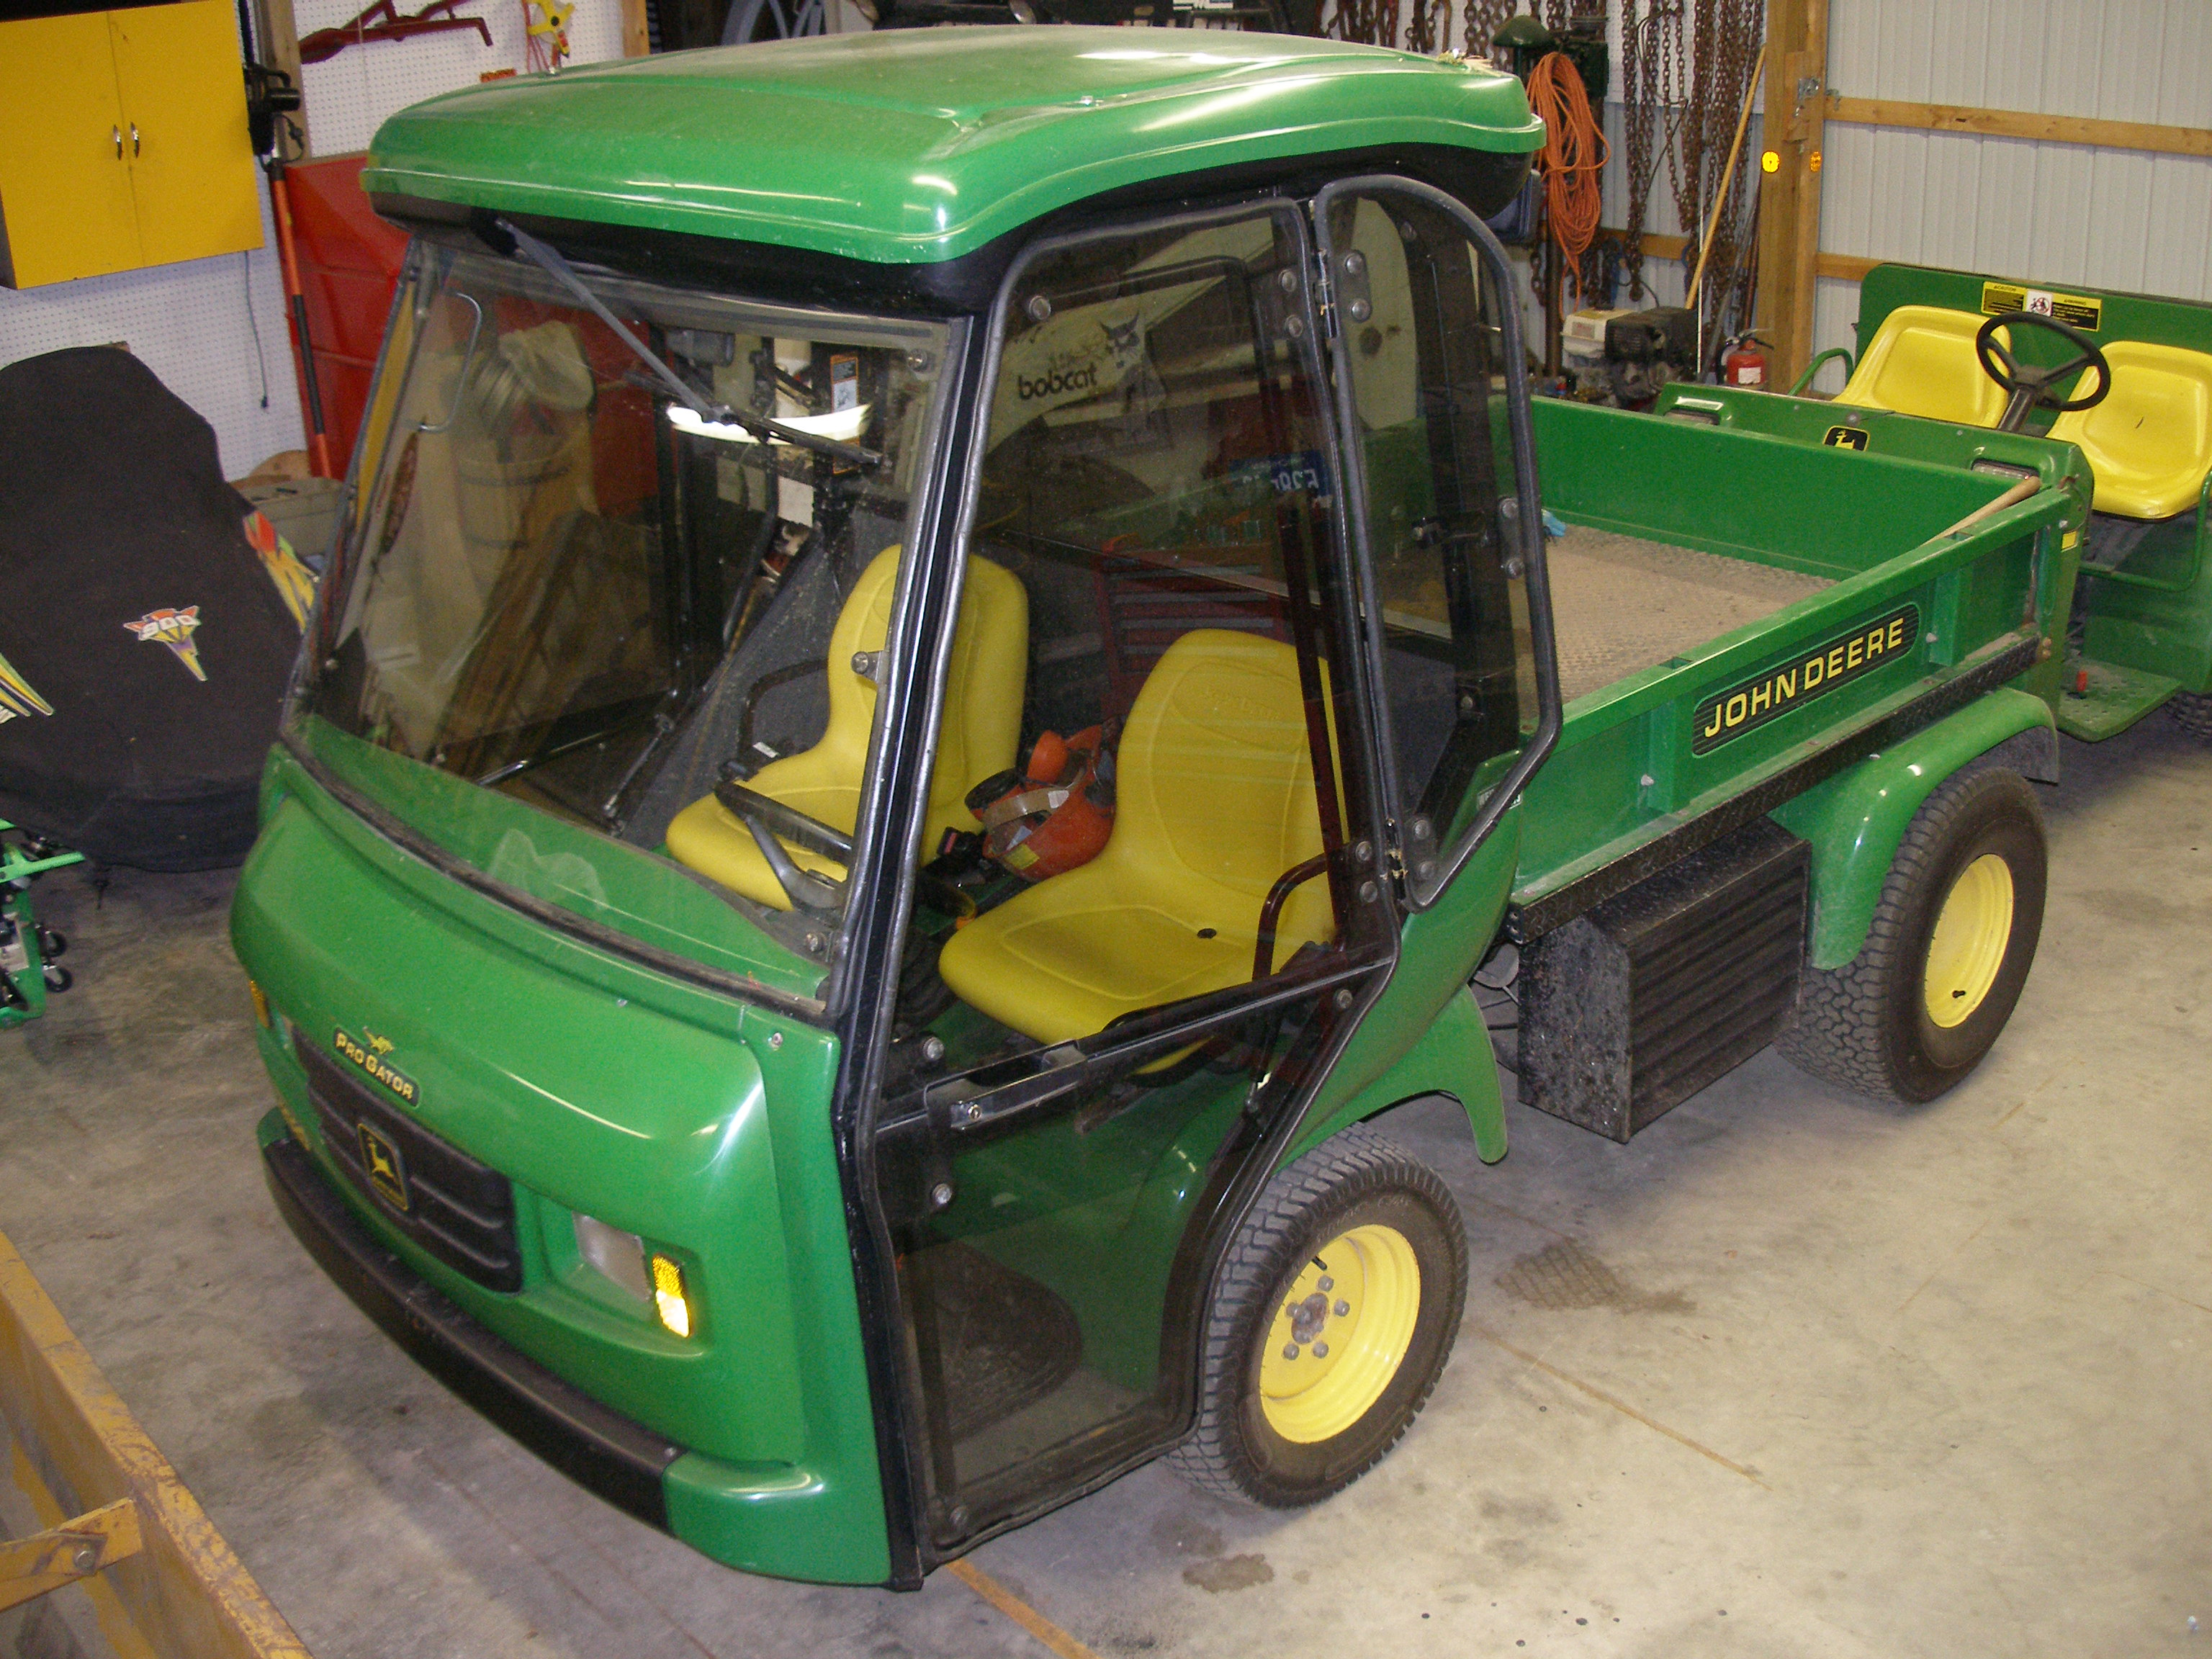 John deere gator photo - 2